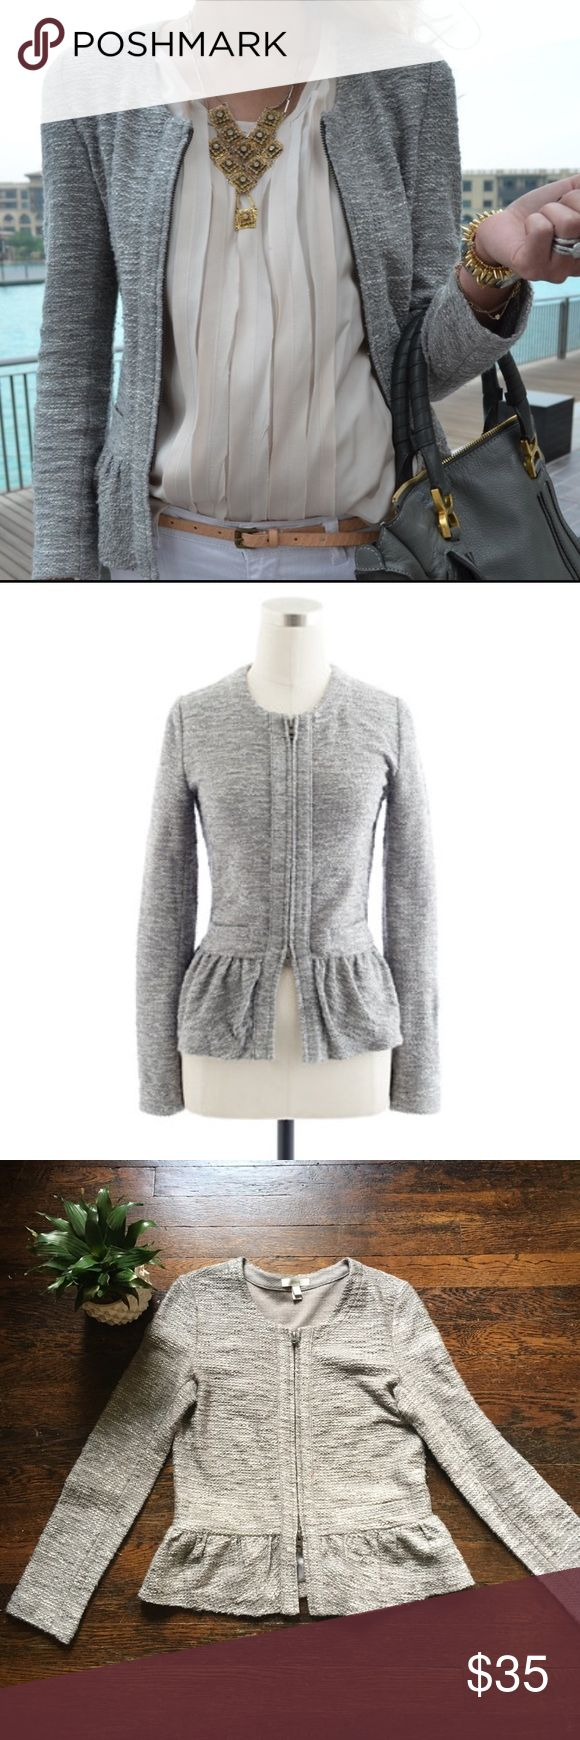 J Crew Peplum Jacket Amazing silver and grey peplum jacket from J Crew. Size S. Excellent used condition. Please feel free to ask questions  J. Crew Jackets & Coats